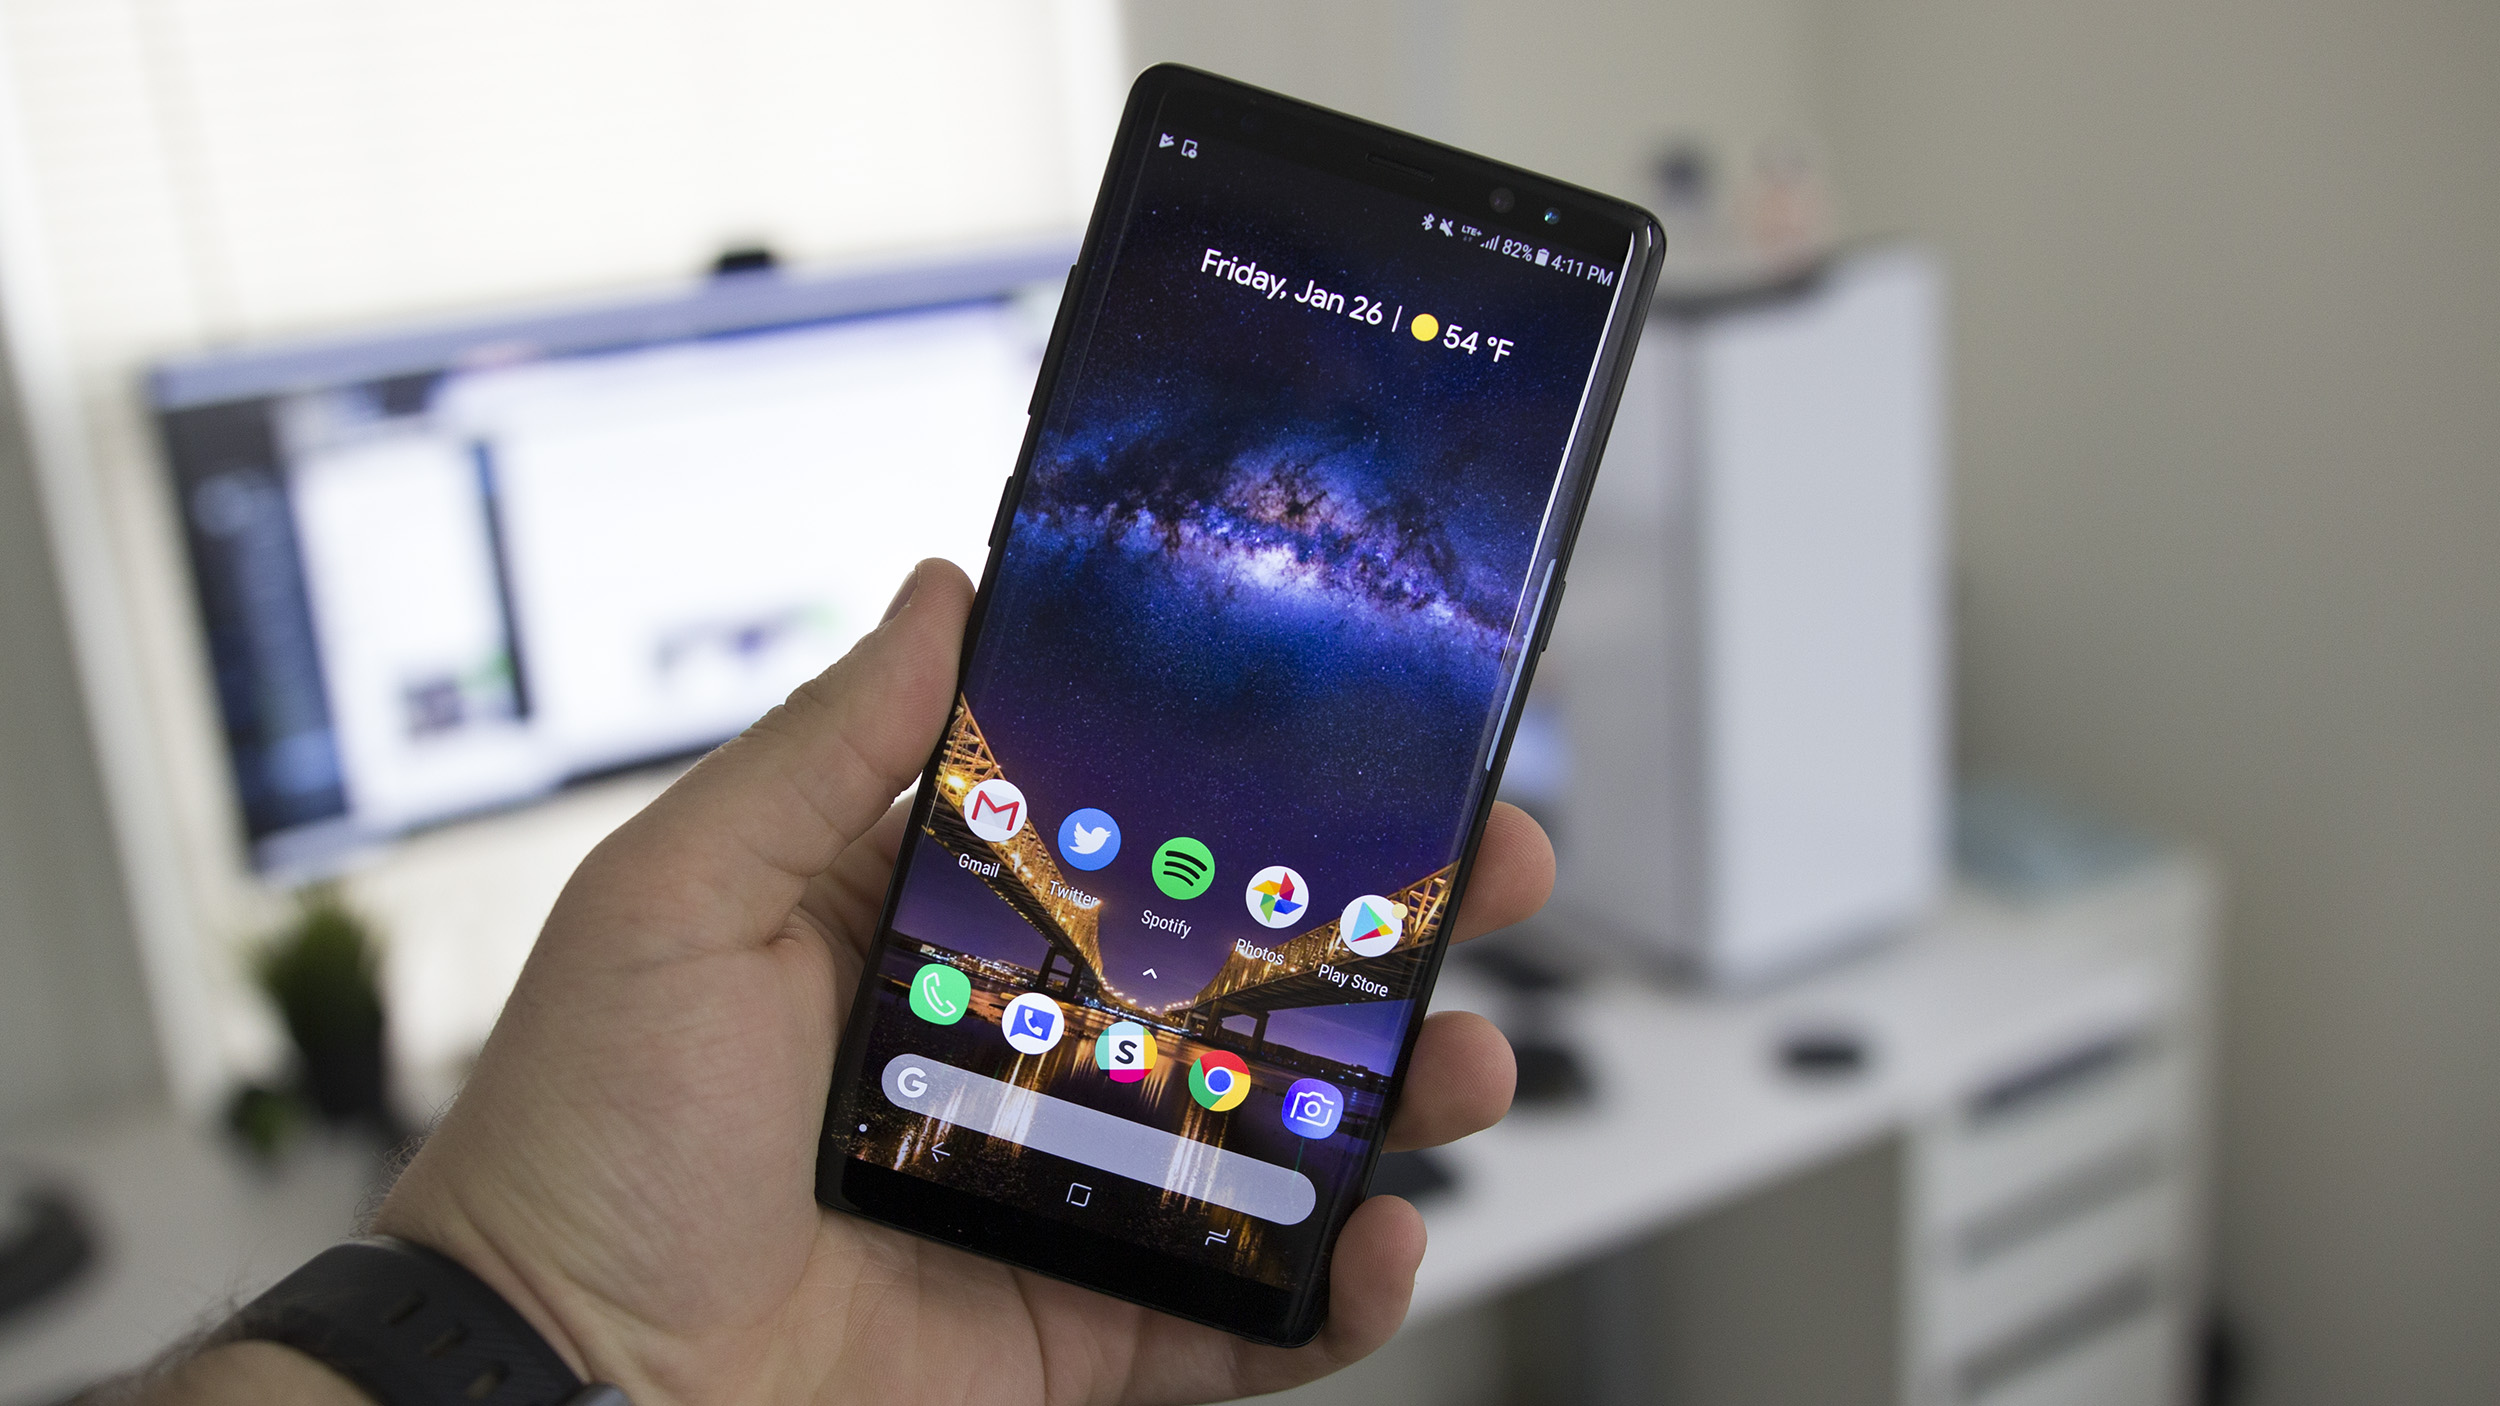 Android Pie beta now rolling out to Samsung Galaxy Note 8